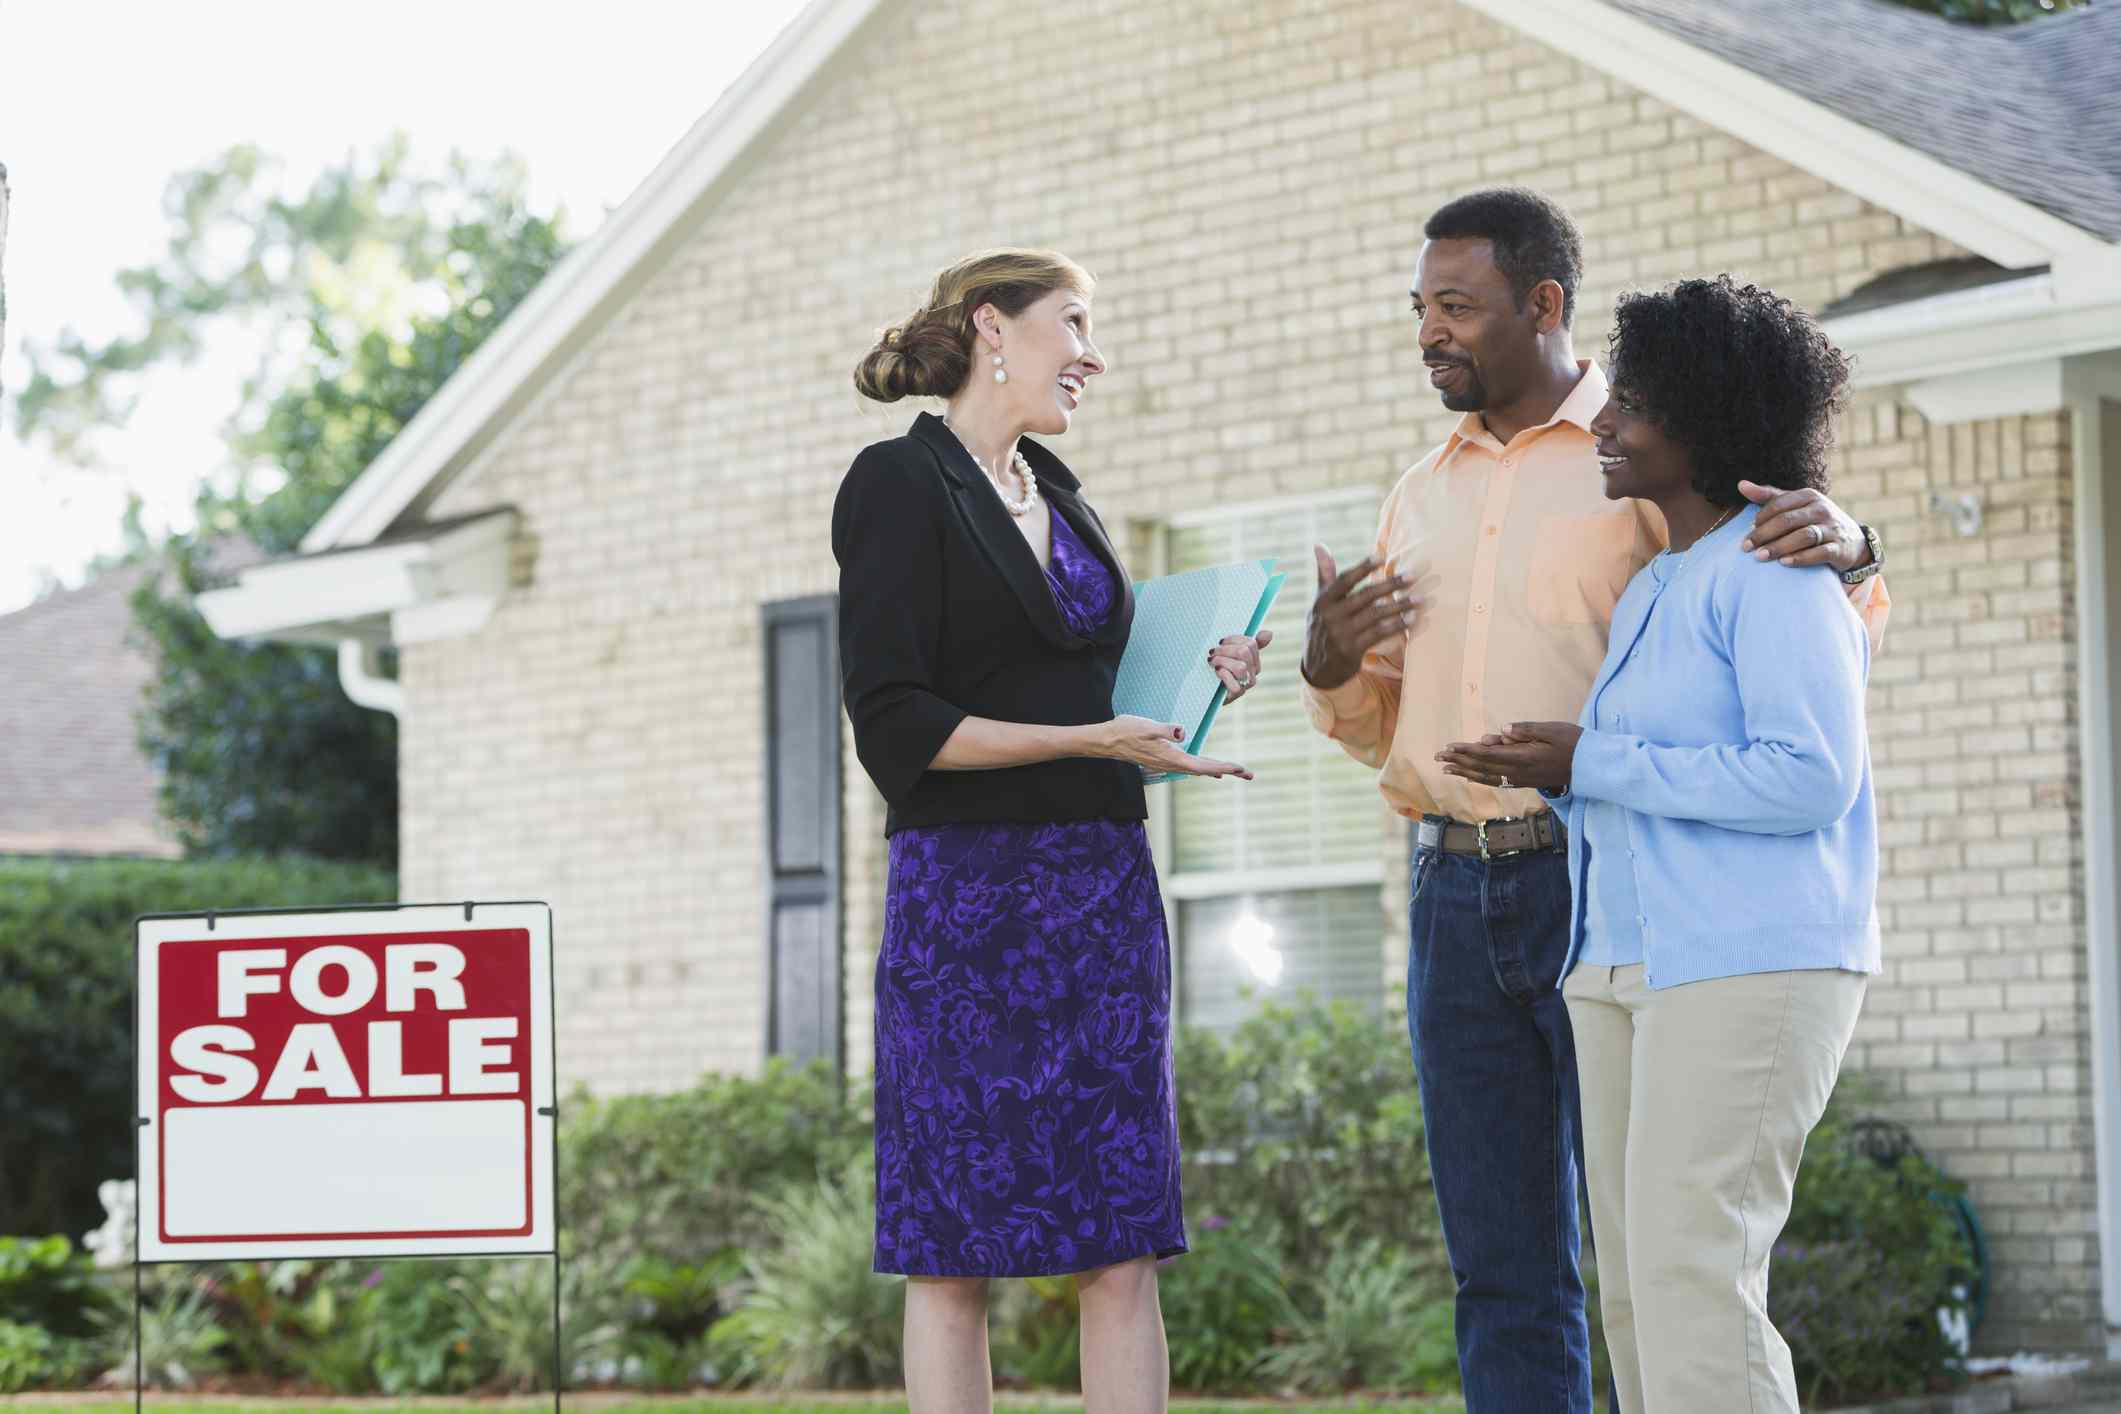 Realtor with marketing and informational materials